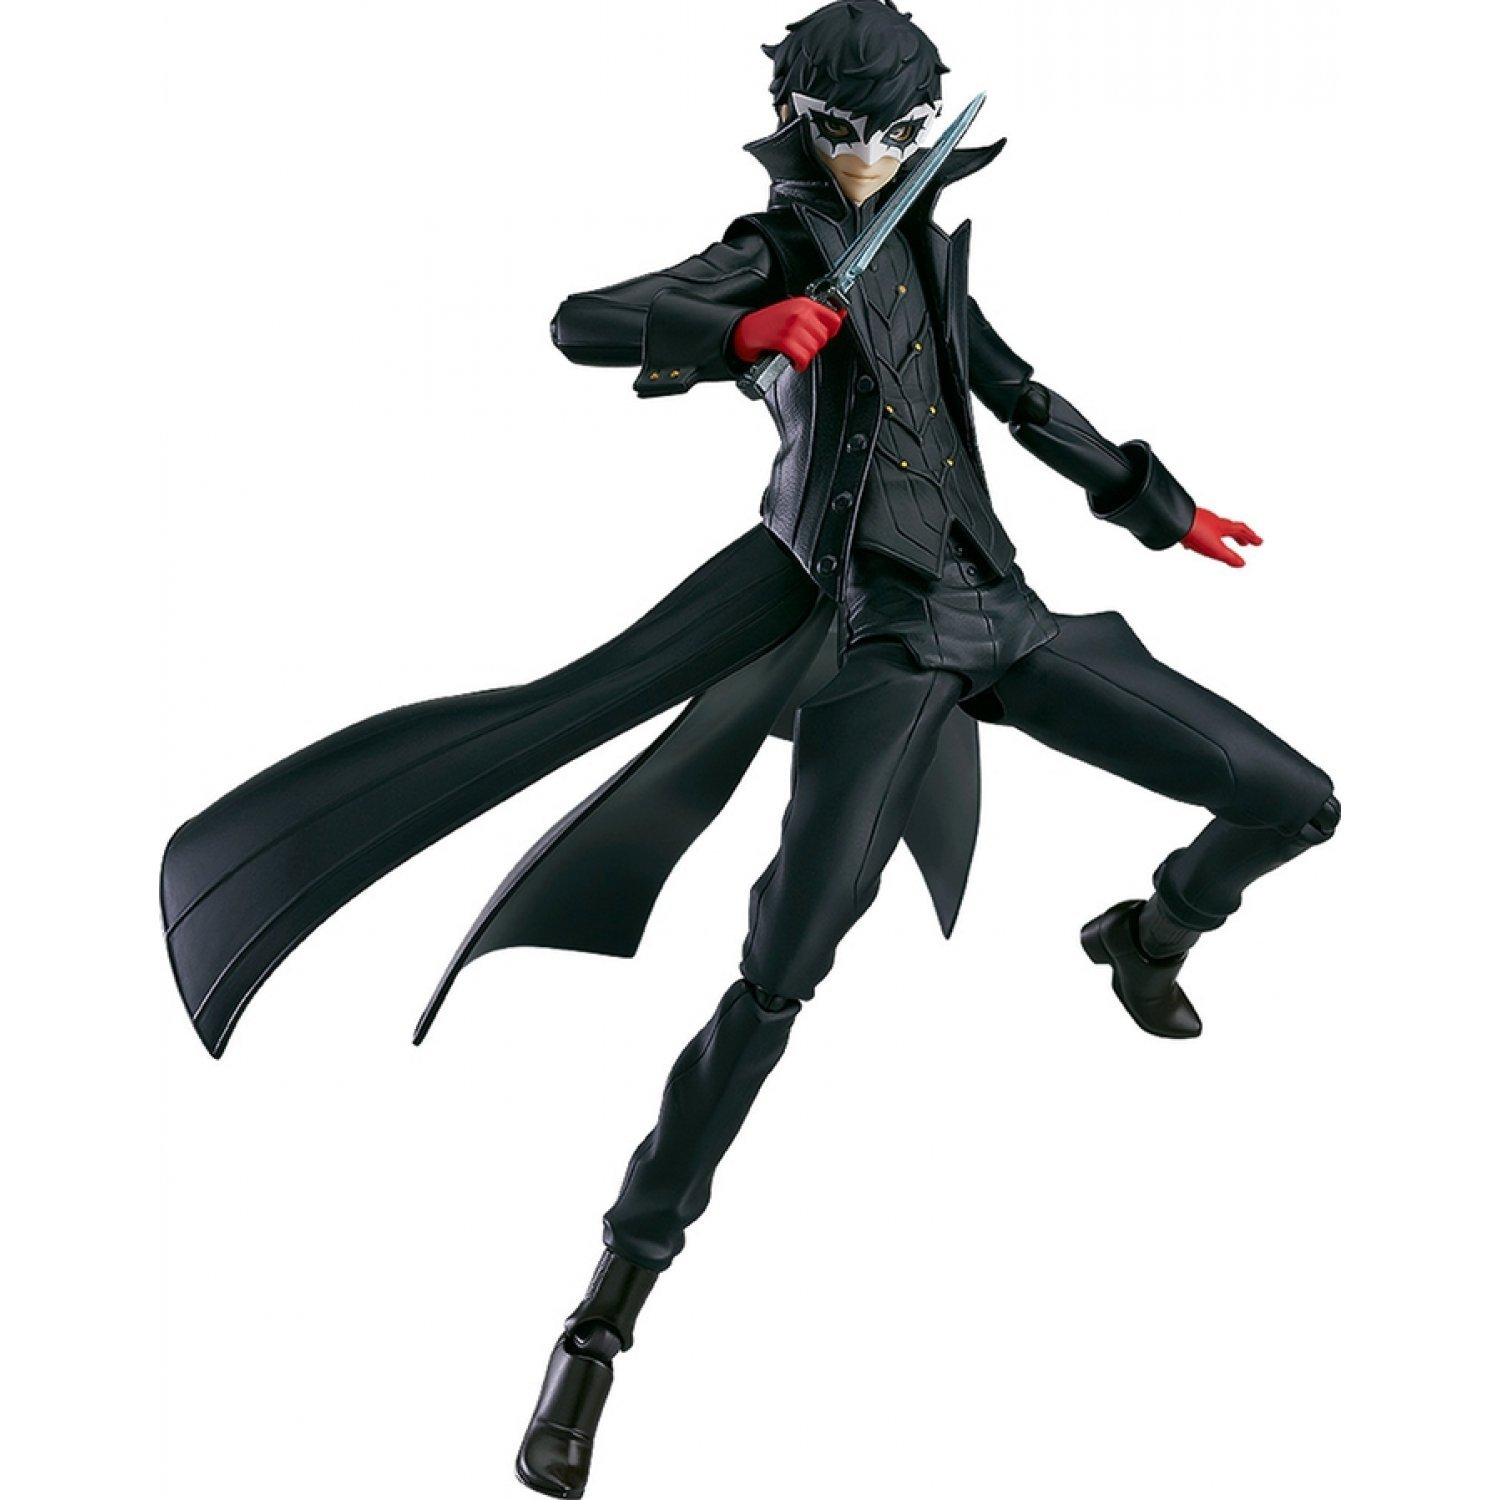 Figma No. 363 Persona 5: Joker (Re-run